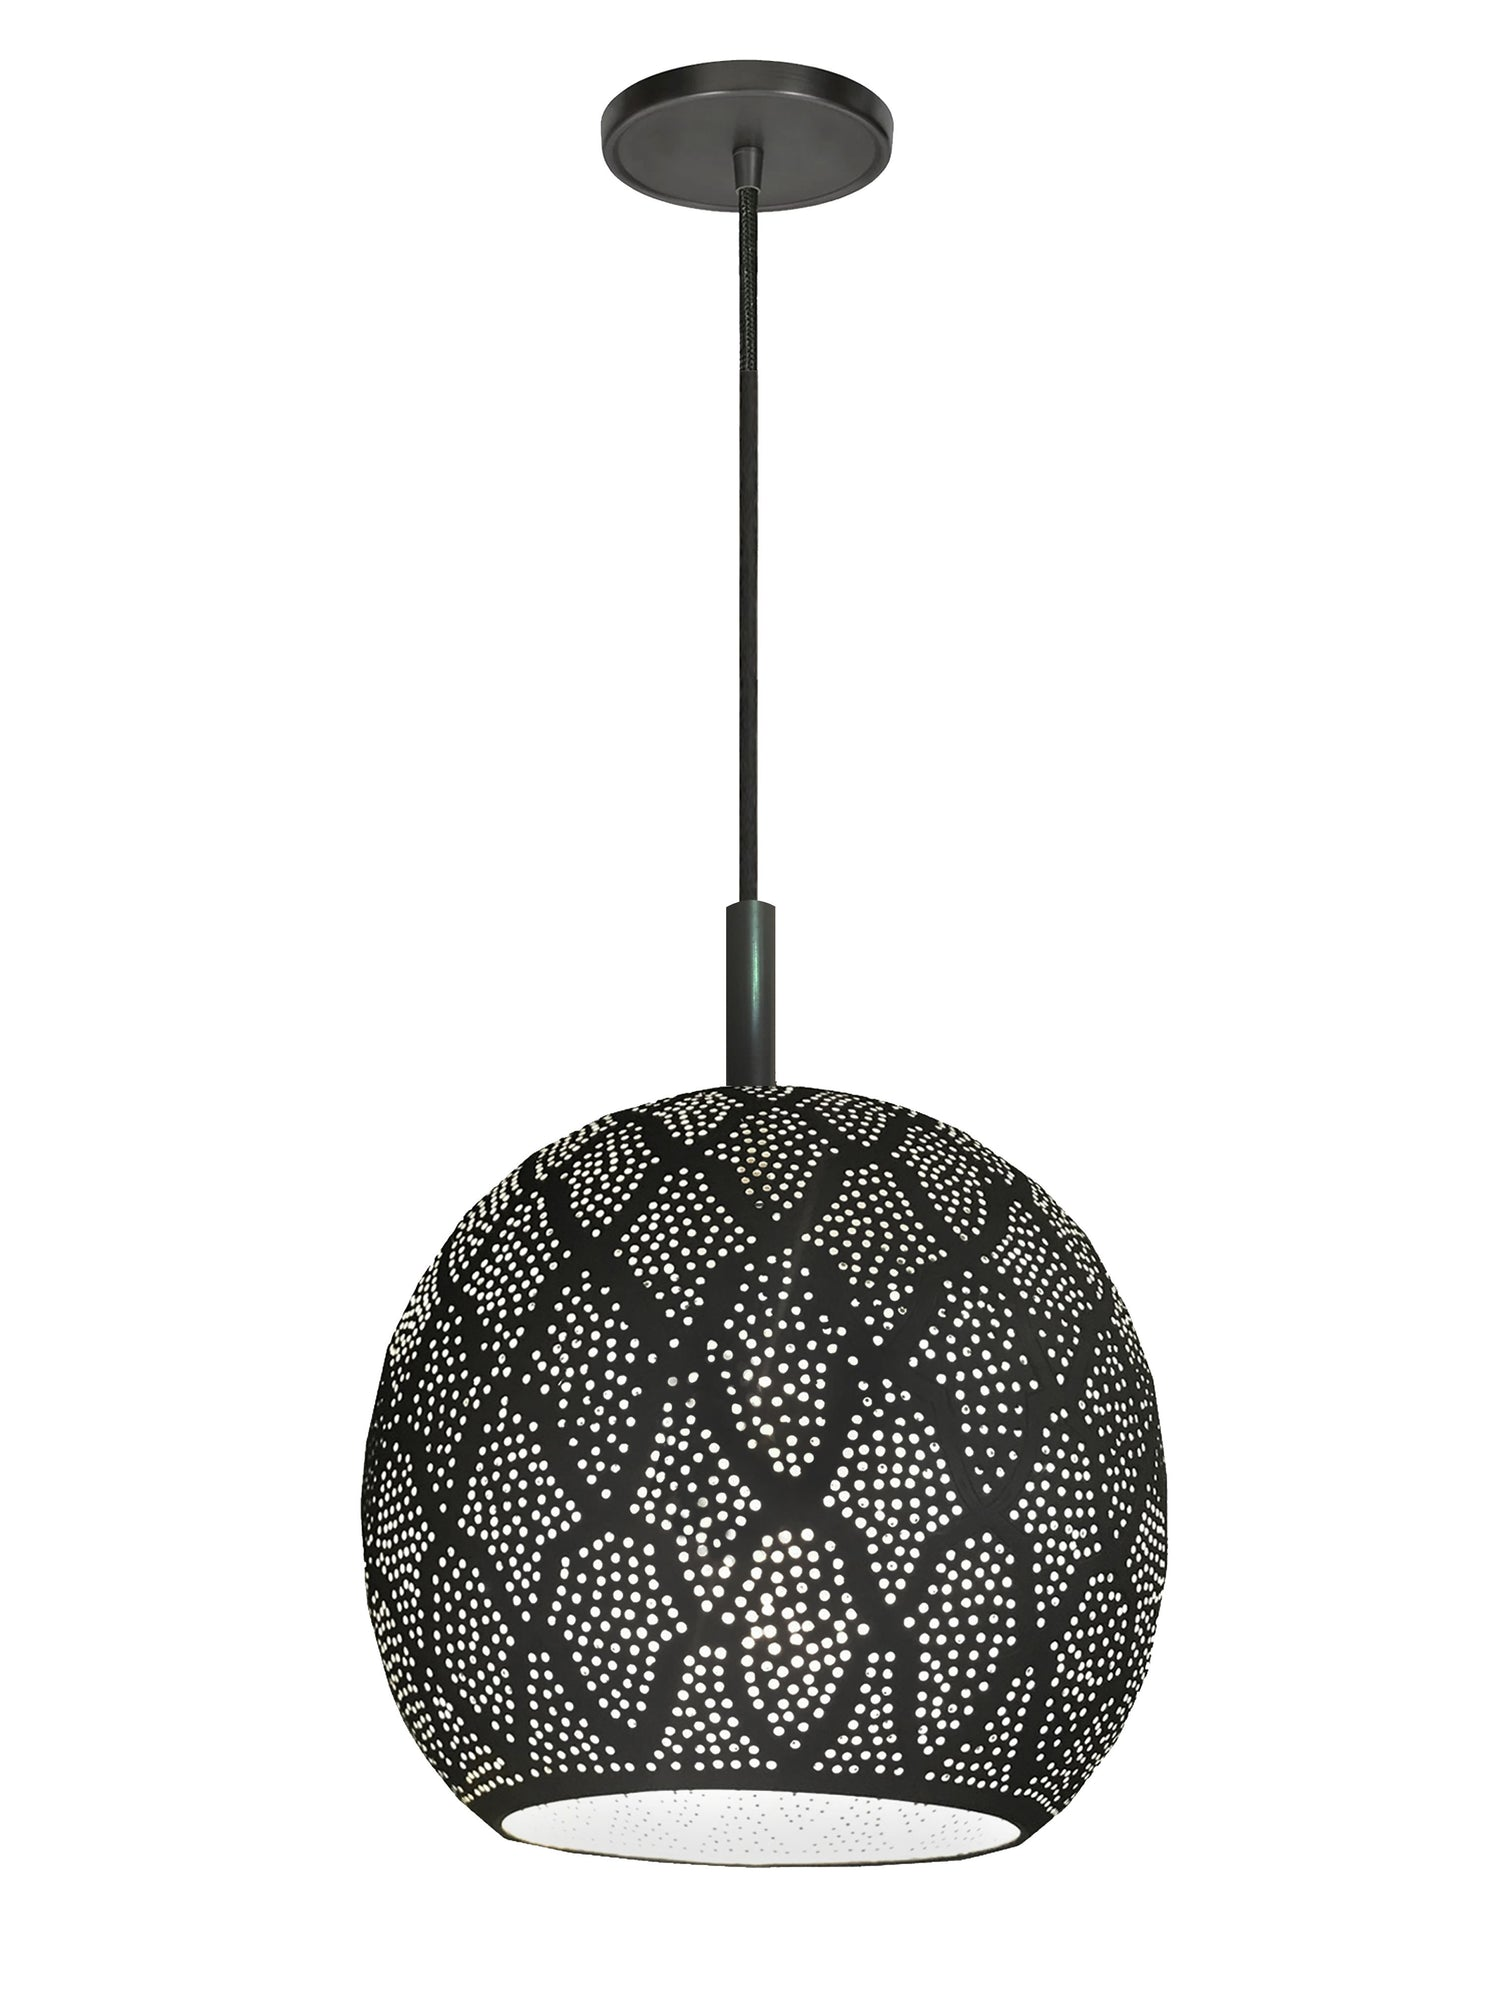 Dounia Home Aria Pendant Light Pendant light Dounia Home